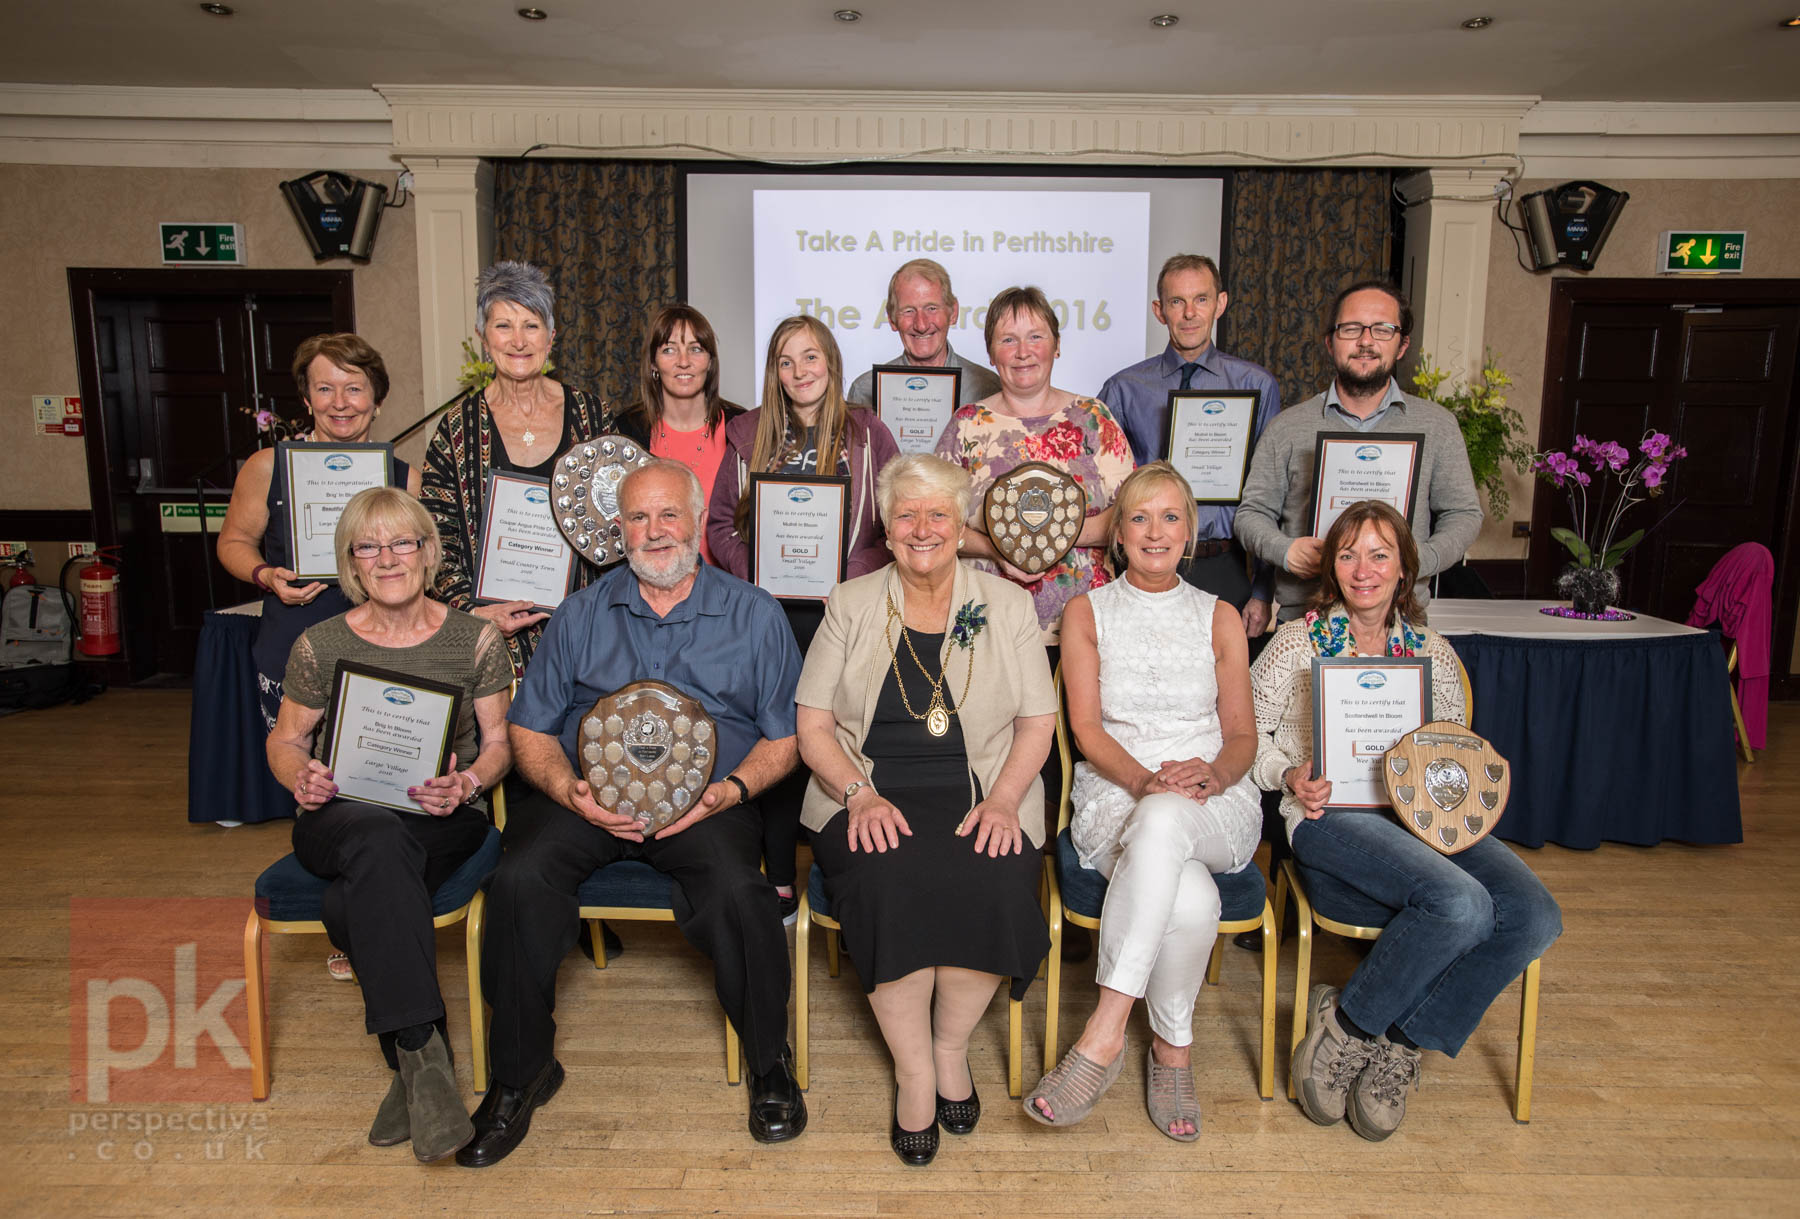 Take a Pride in Perth Award ceremony took place at the Salutation Hotel in Perth.